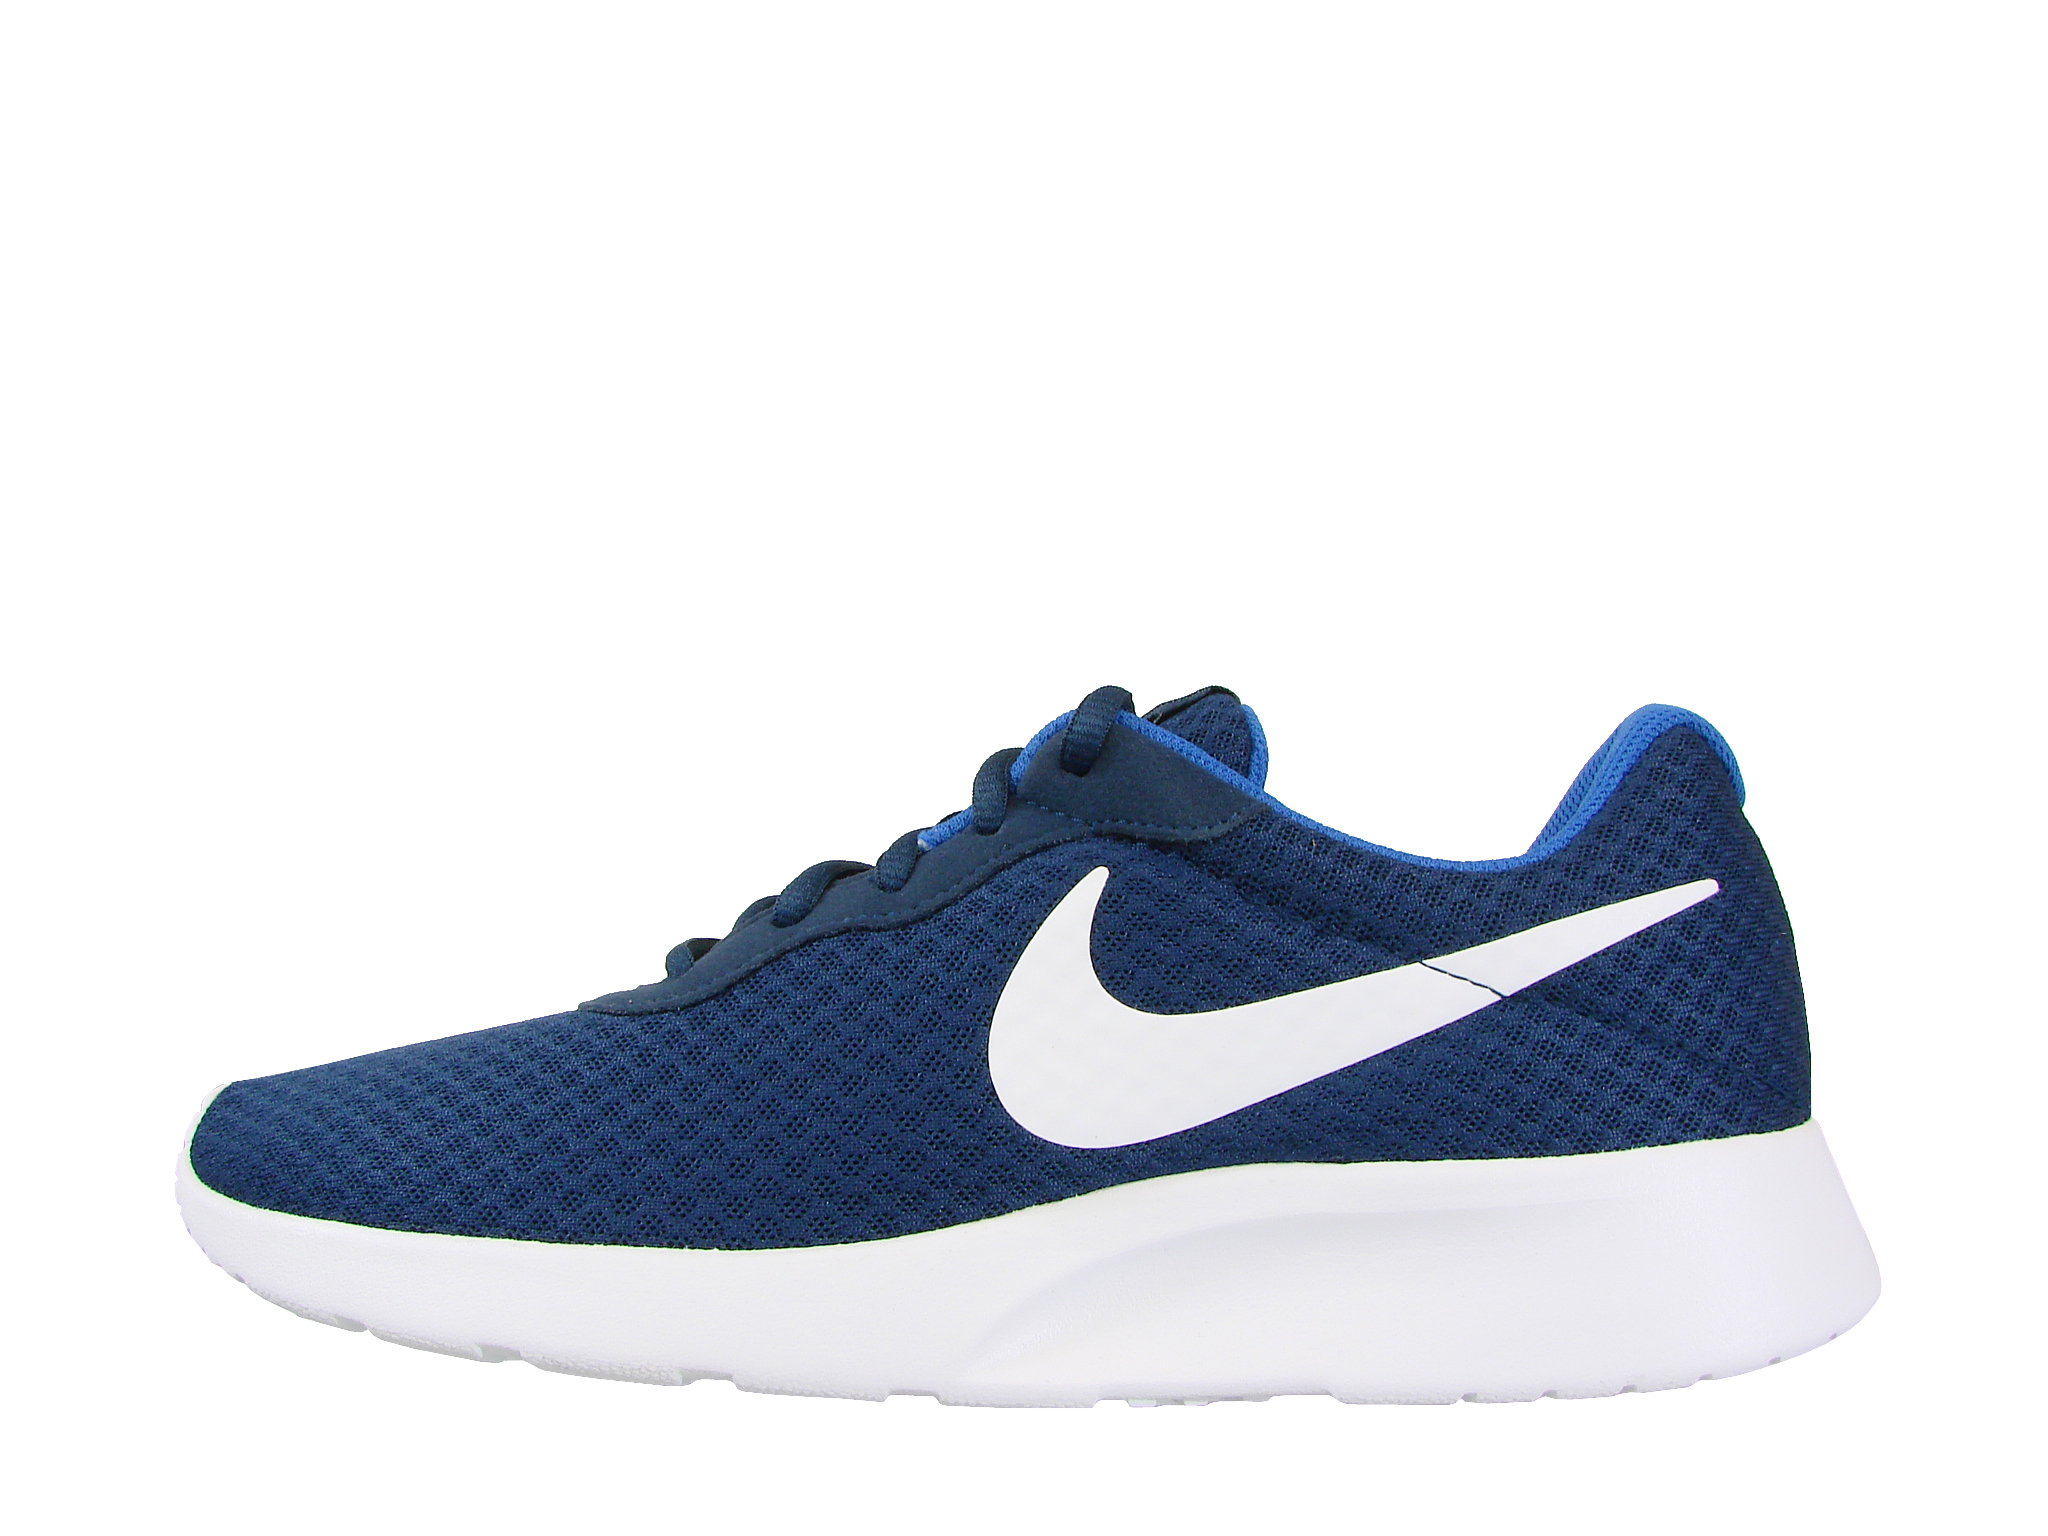 100% authentic new high finest selection R. 48.5 NIKE TANJUN 812654-414 buty męskie - 7298762450 ...